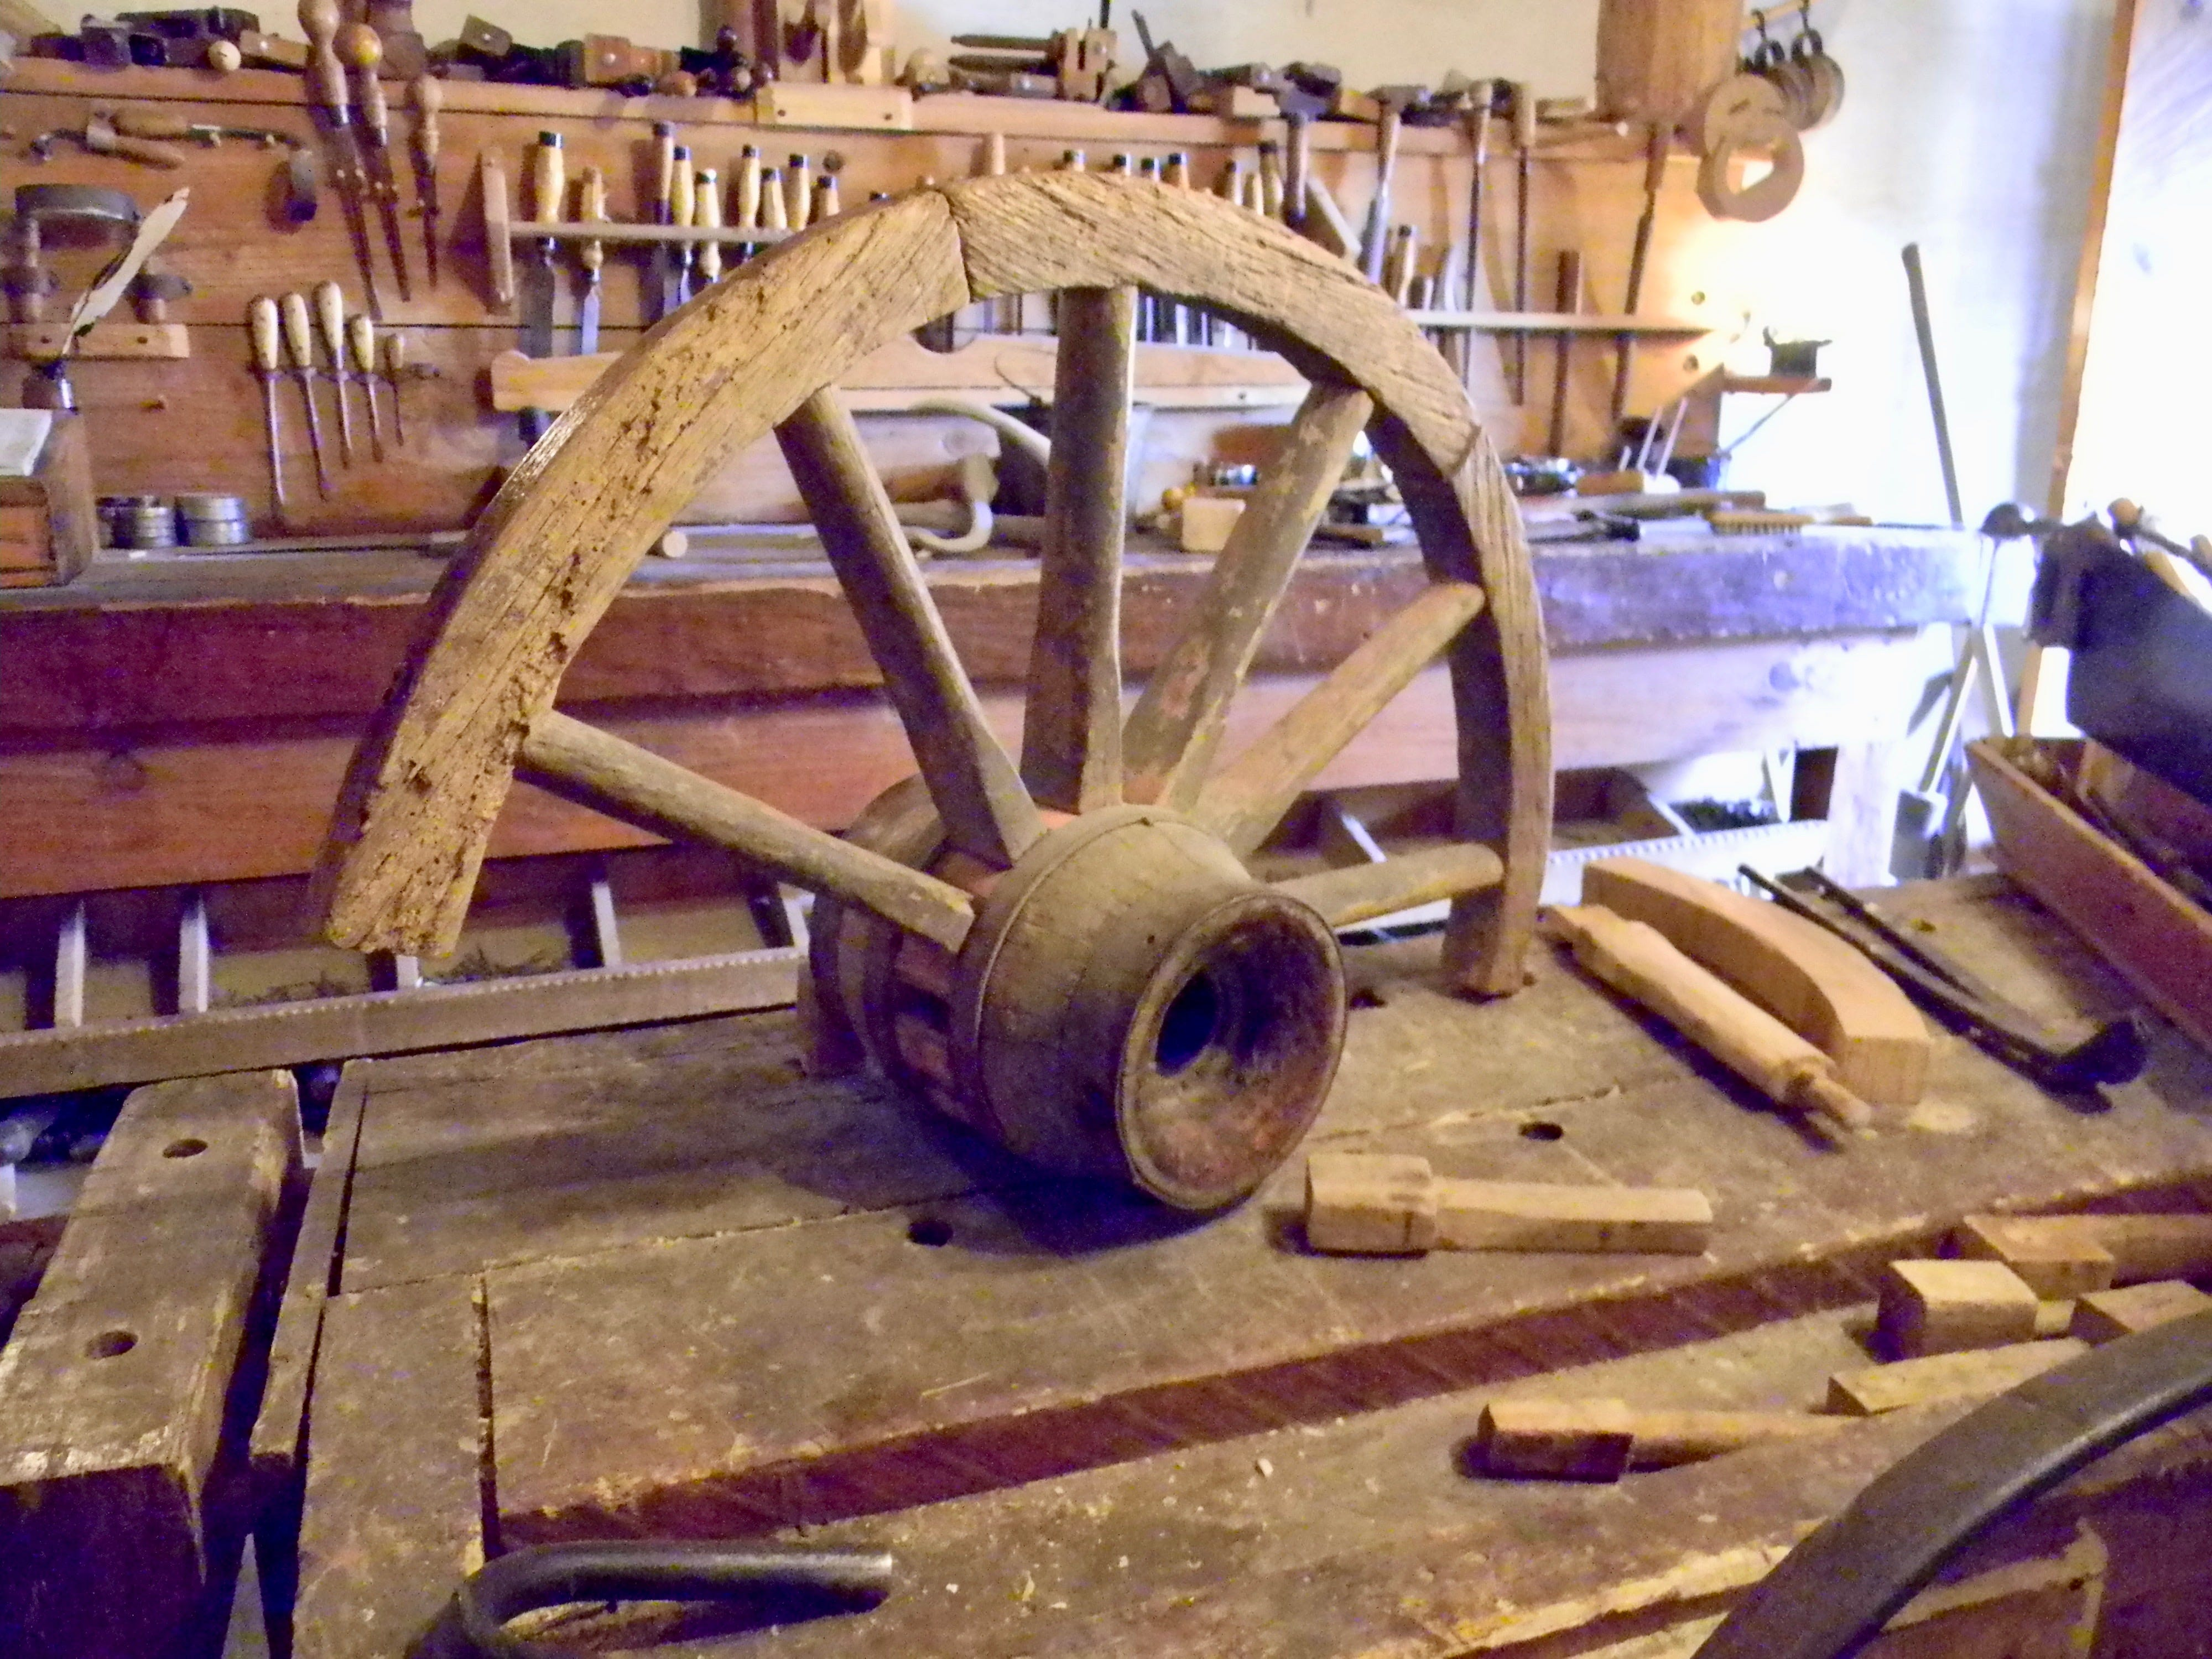 The Santa Fe Trail was hard on wheels, often rebuilt in the shop at Bent's Old Fort.